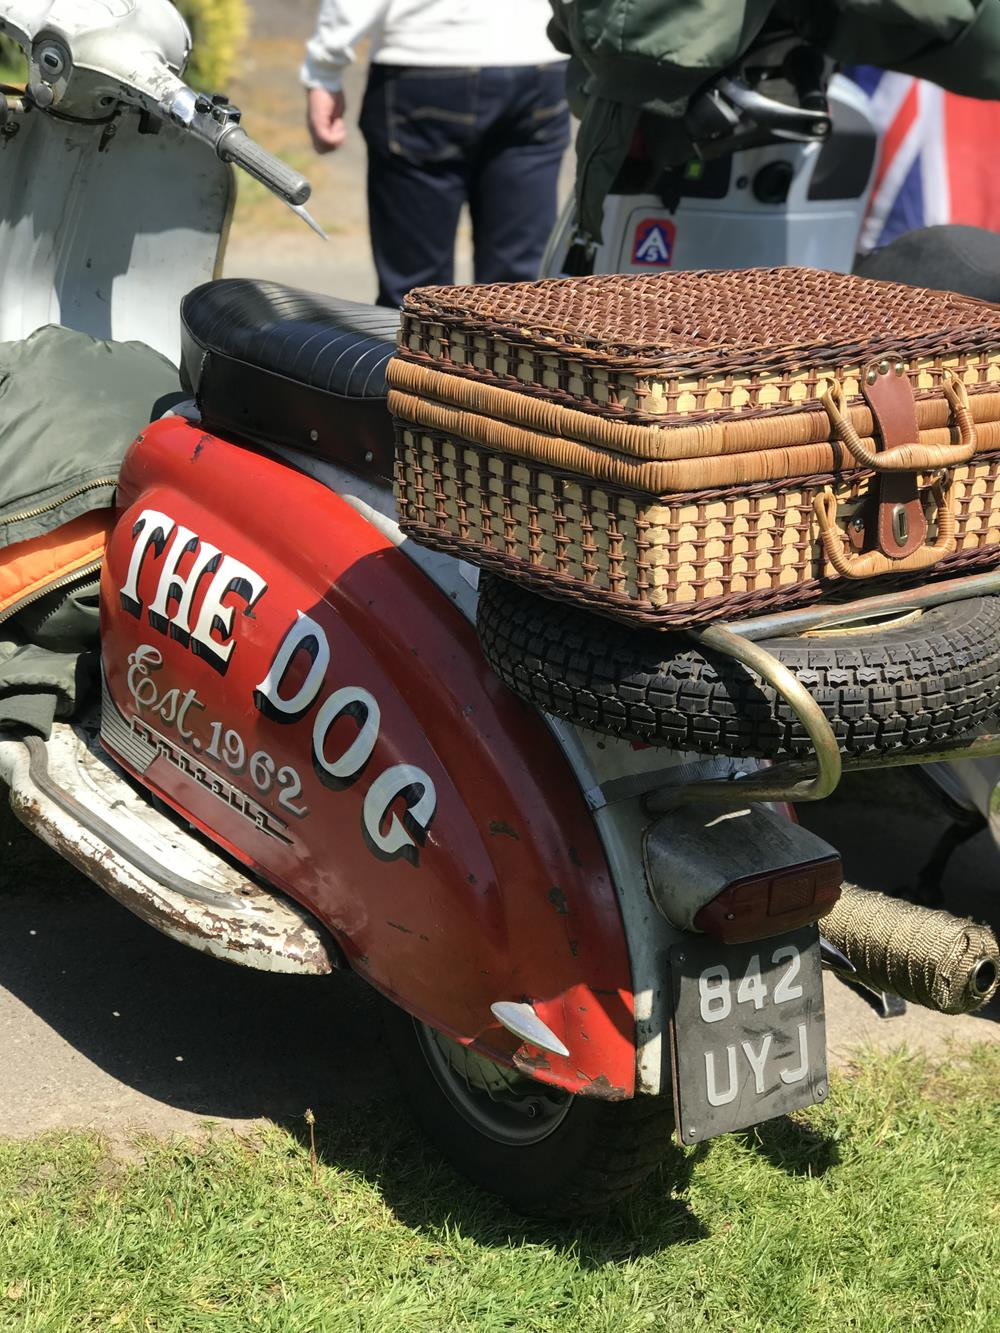 Lambretta with The Dog on the side panel and basket on the back rack